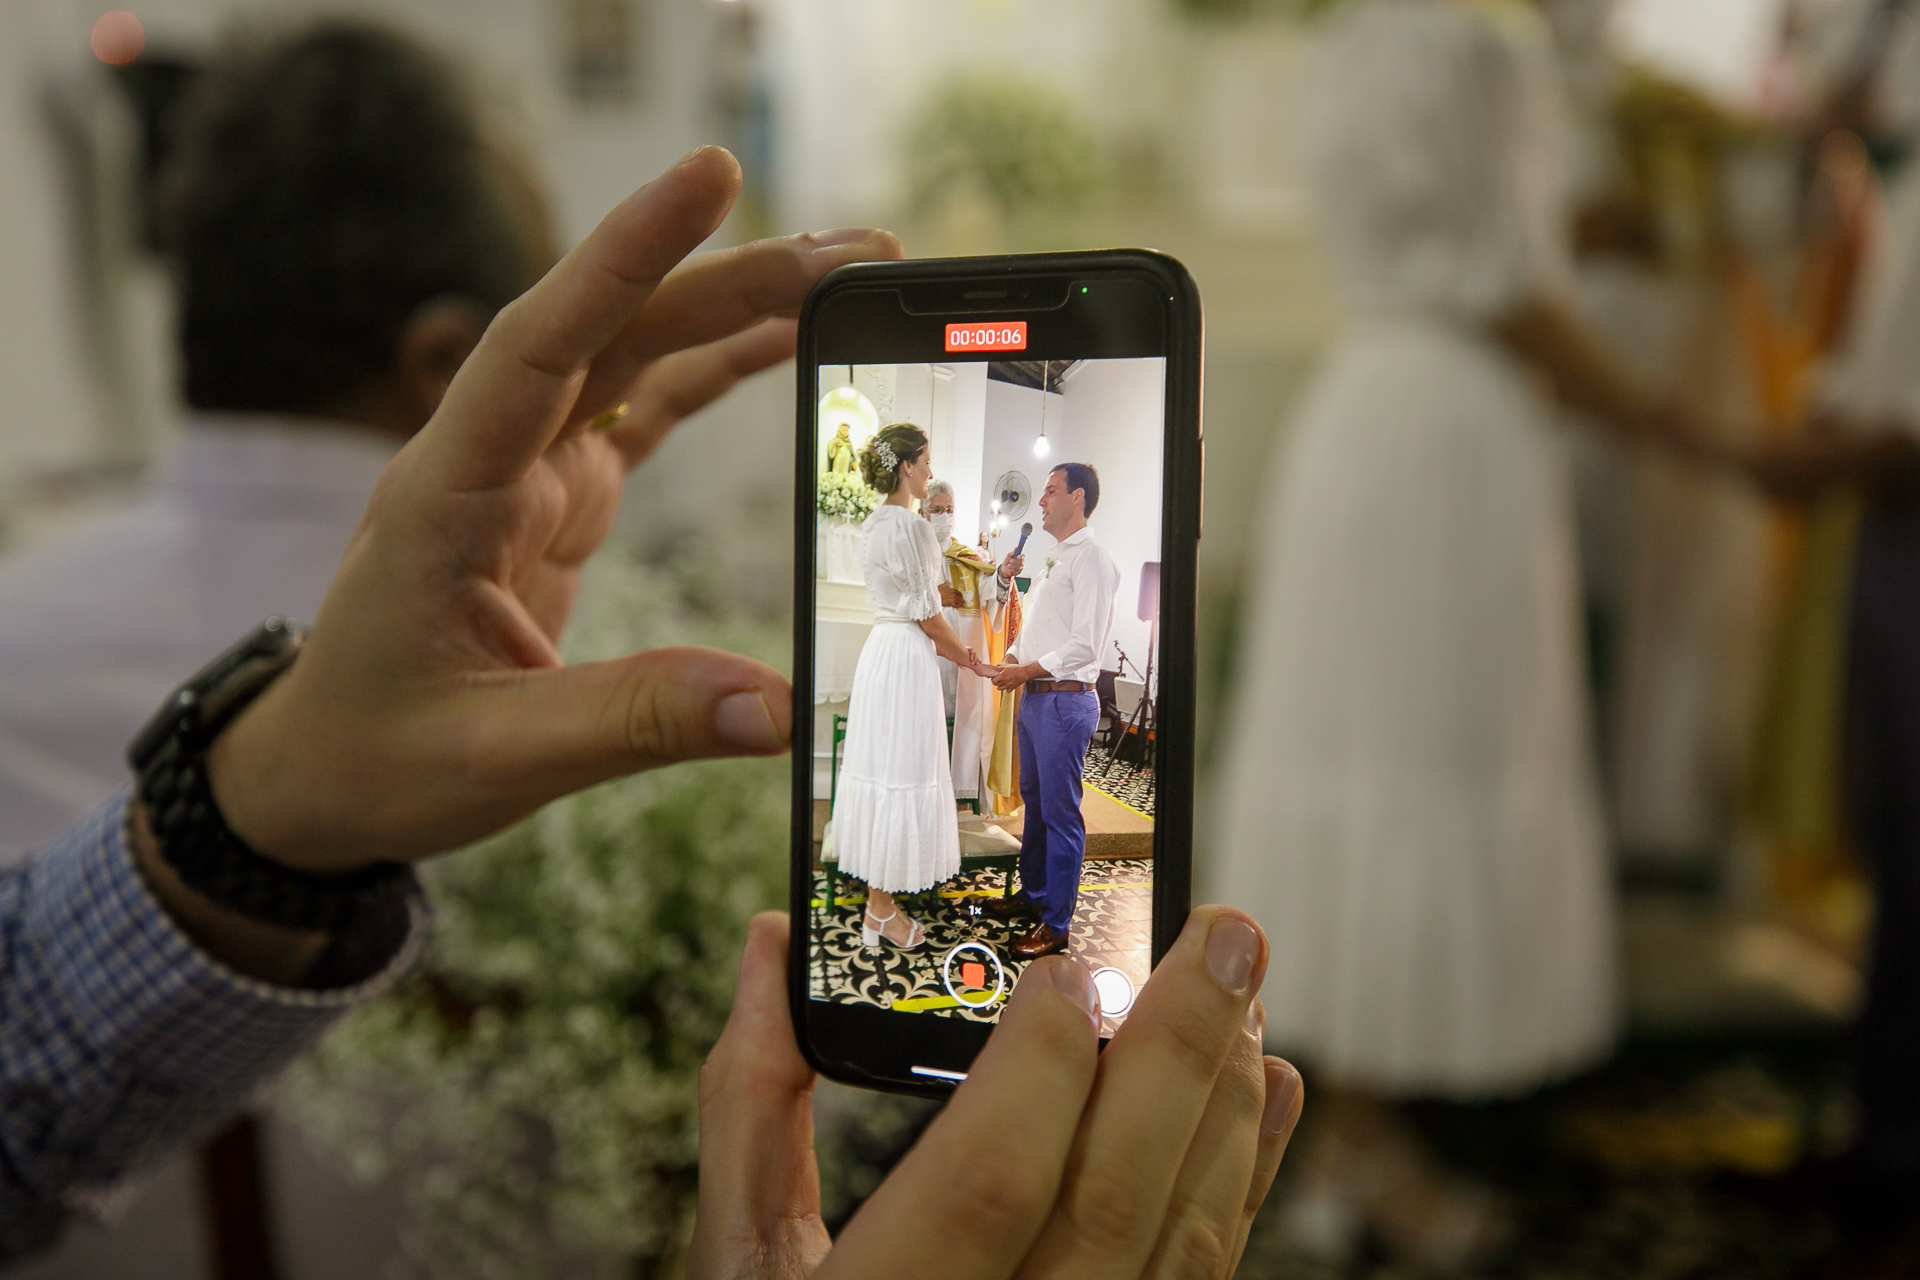 São Gonçalo Church Wedding Ceremony Image in Maceio | Video shot of the couple holding hands and reciting their vows